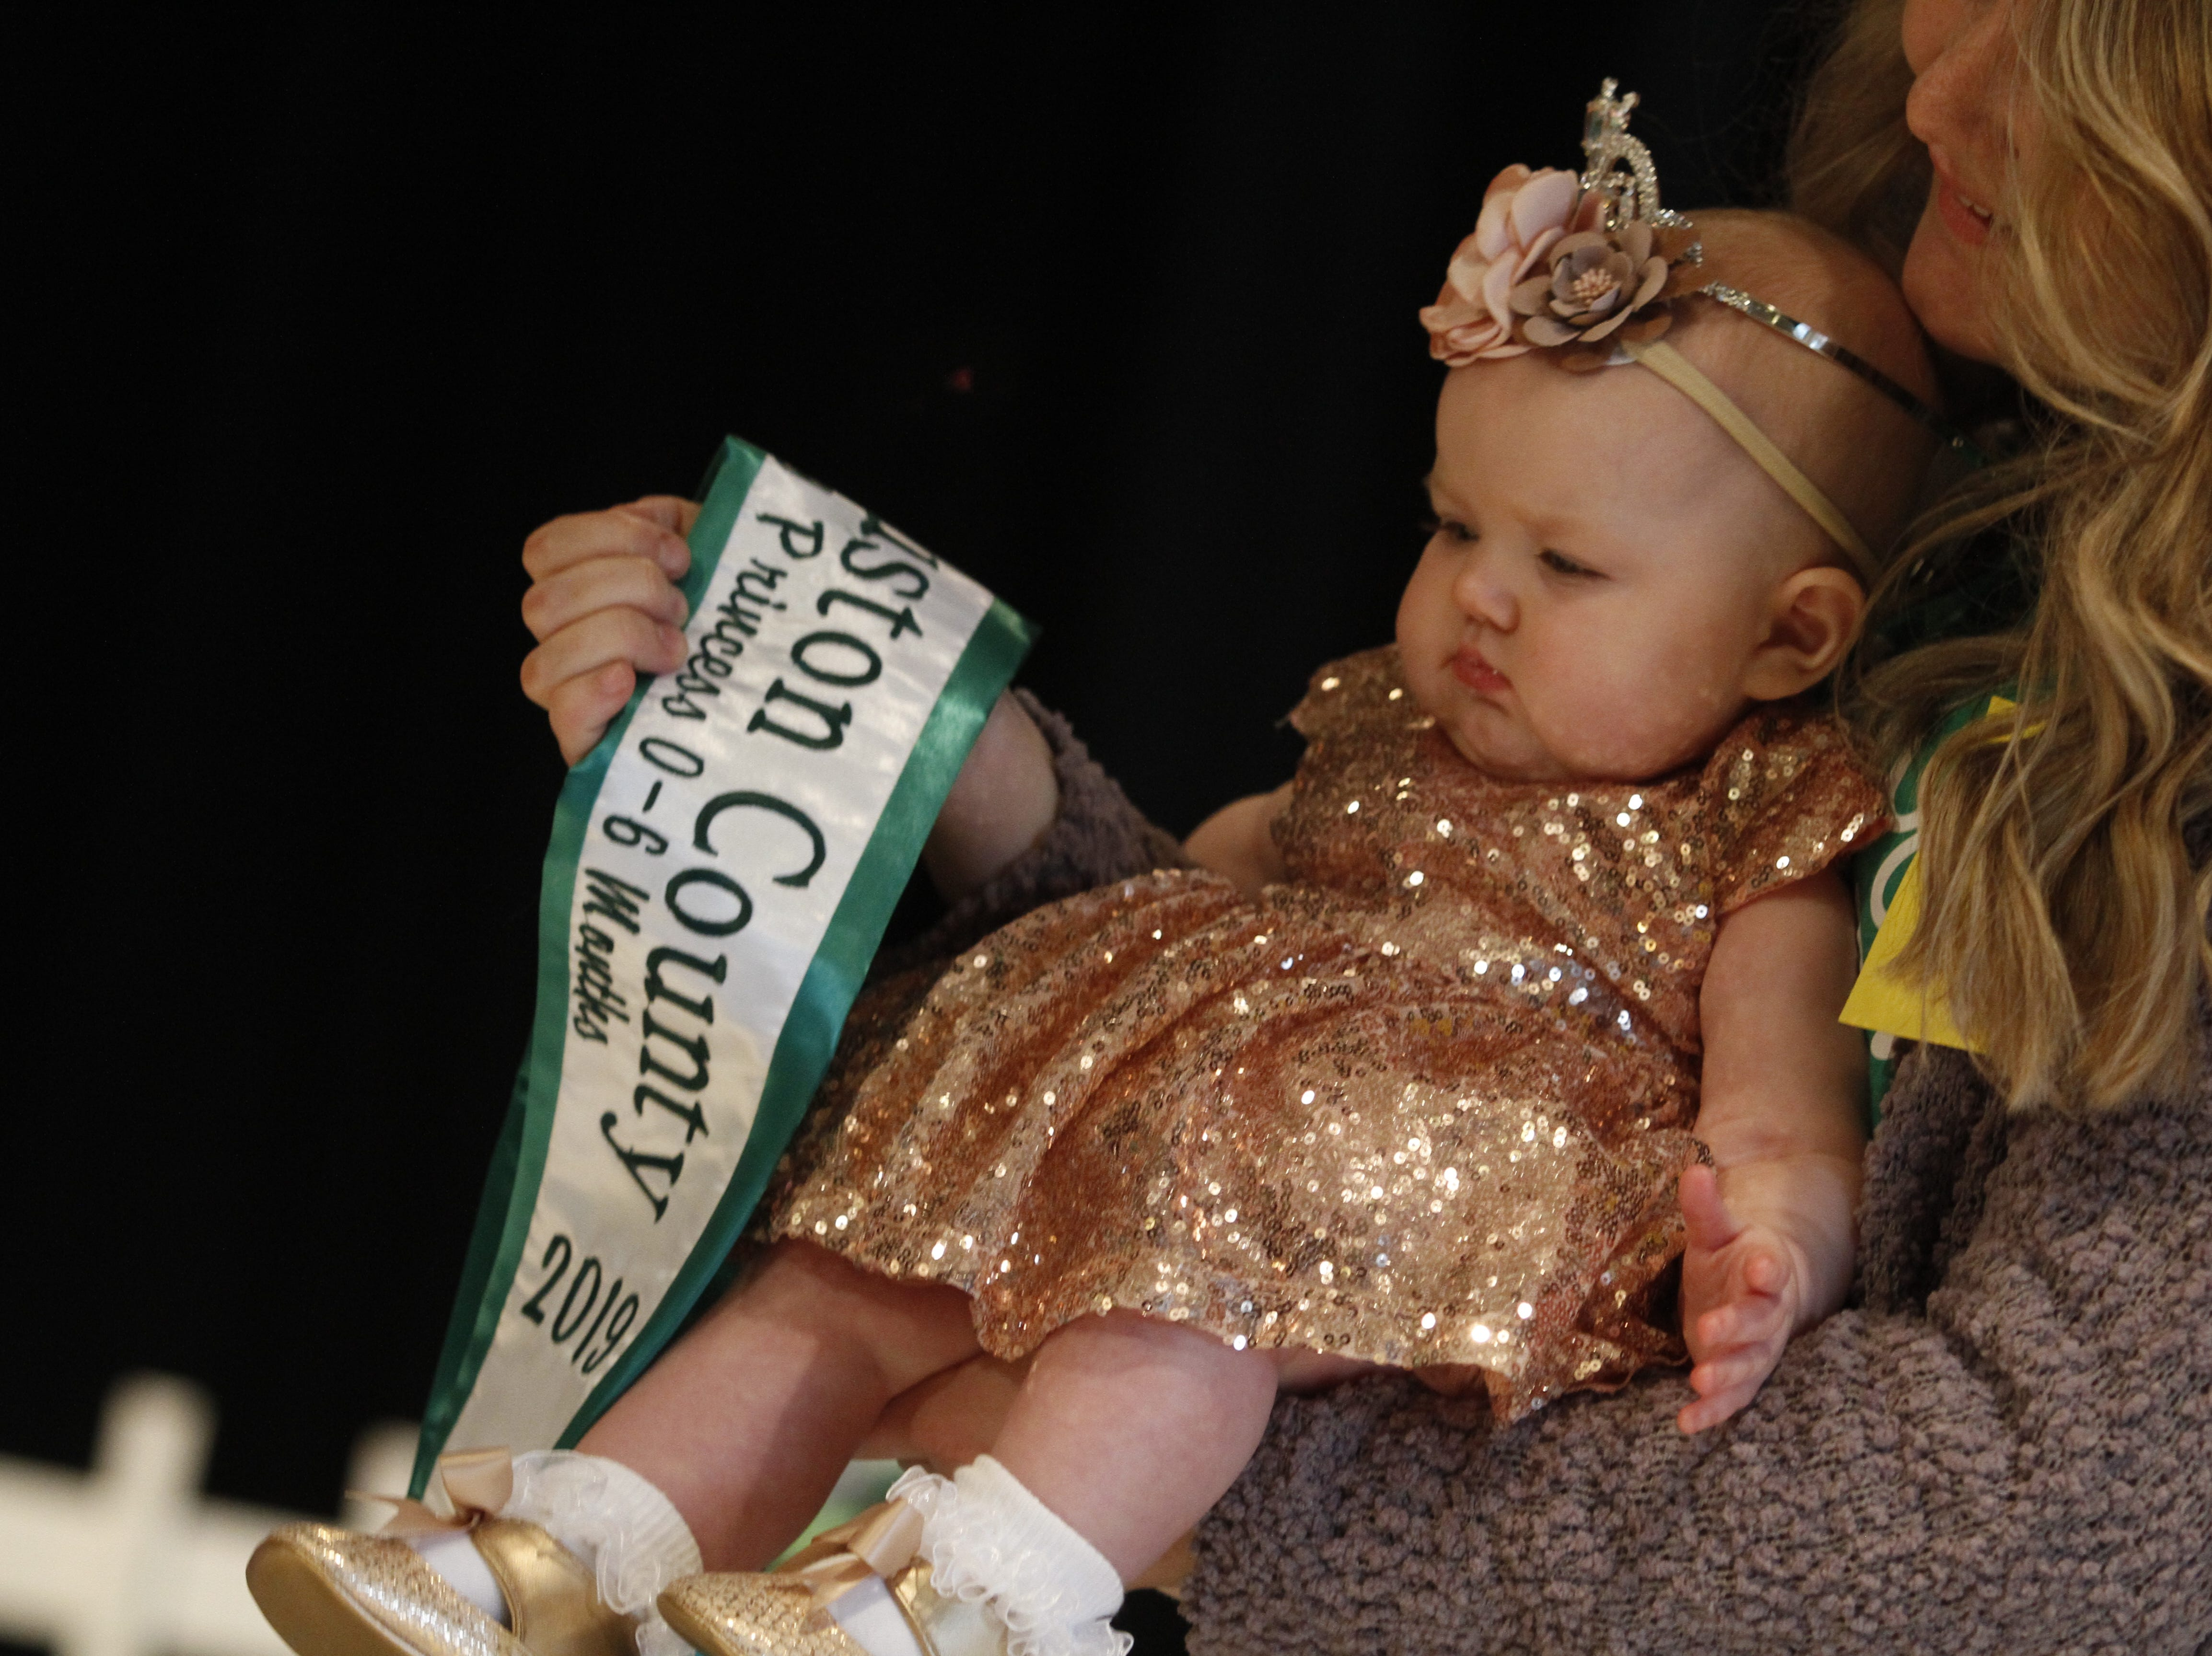 Jade Angelilli is awarded the Houston County Tiny Princess 0-6 Months sash during the 2019 Houston County Tiny Prince, Tiny Princess Pageant at Houston County High School, on Saturday, March 2, 2019 in Erin, Tenn.